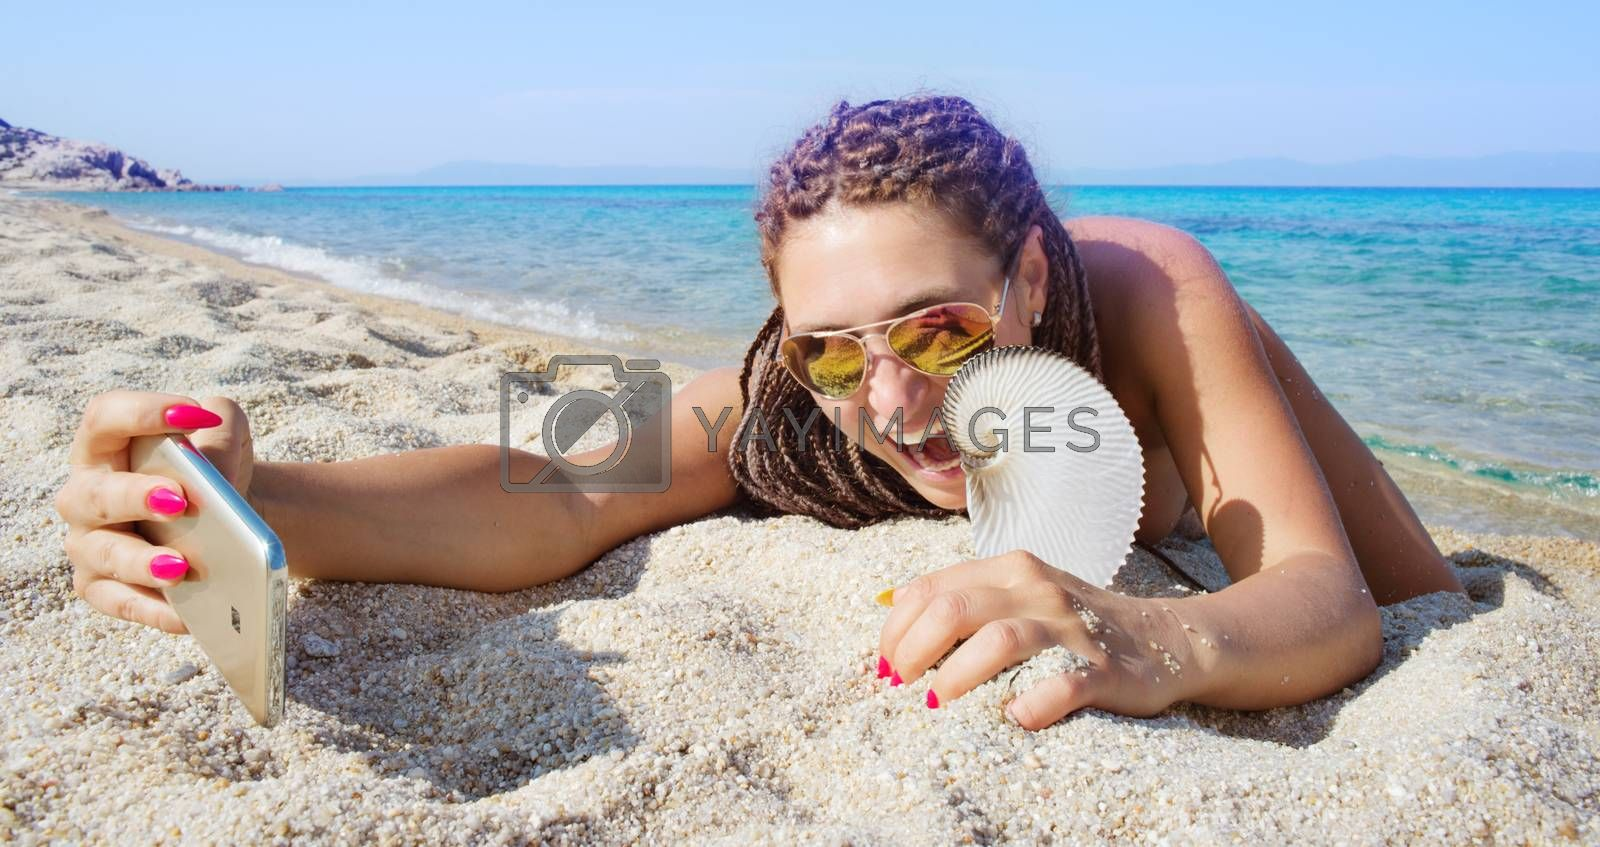 Gorgeous female is making selfie with smartphone lying on a sandy beach of a beautiful distant sea shore, holding nautilus shell.